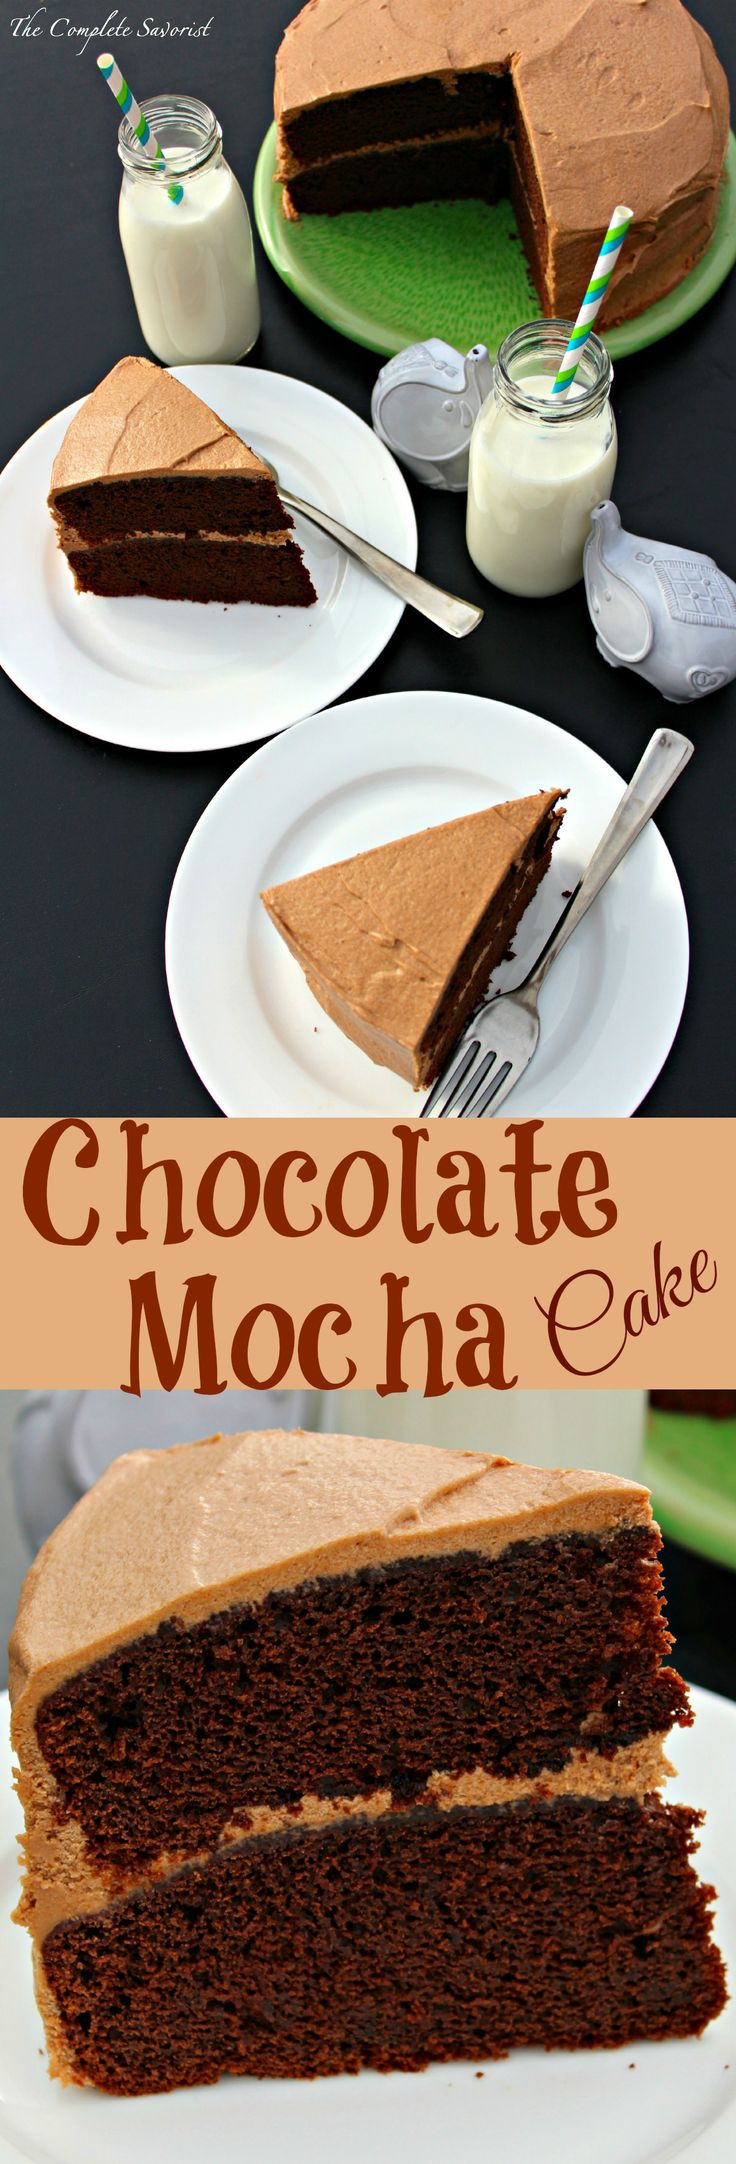 25+ best ideas about Mocha cake on Pinterest | Magic ...